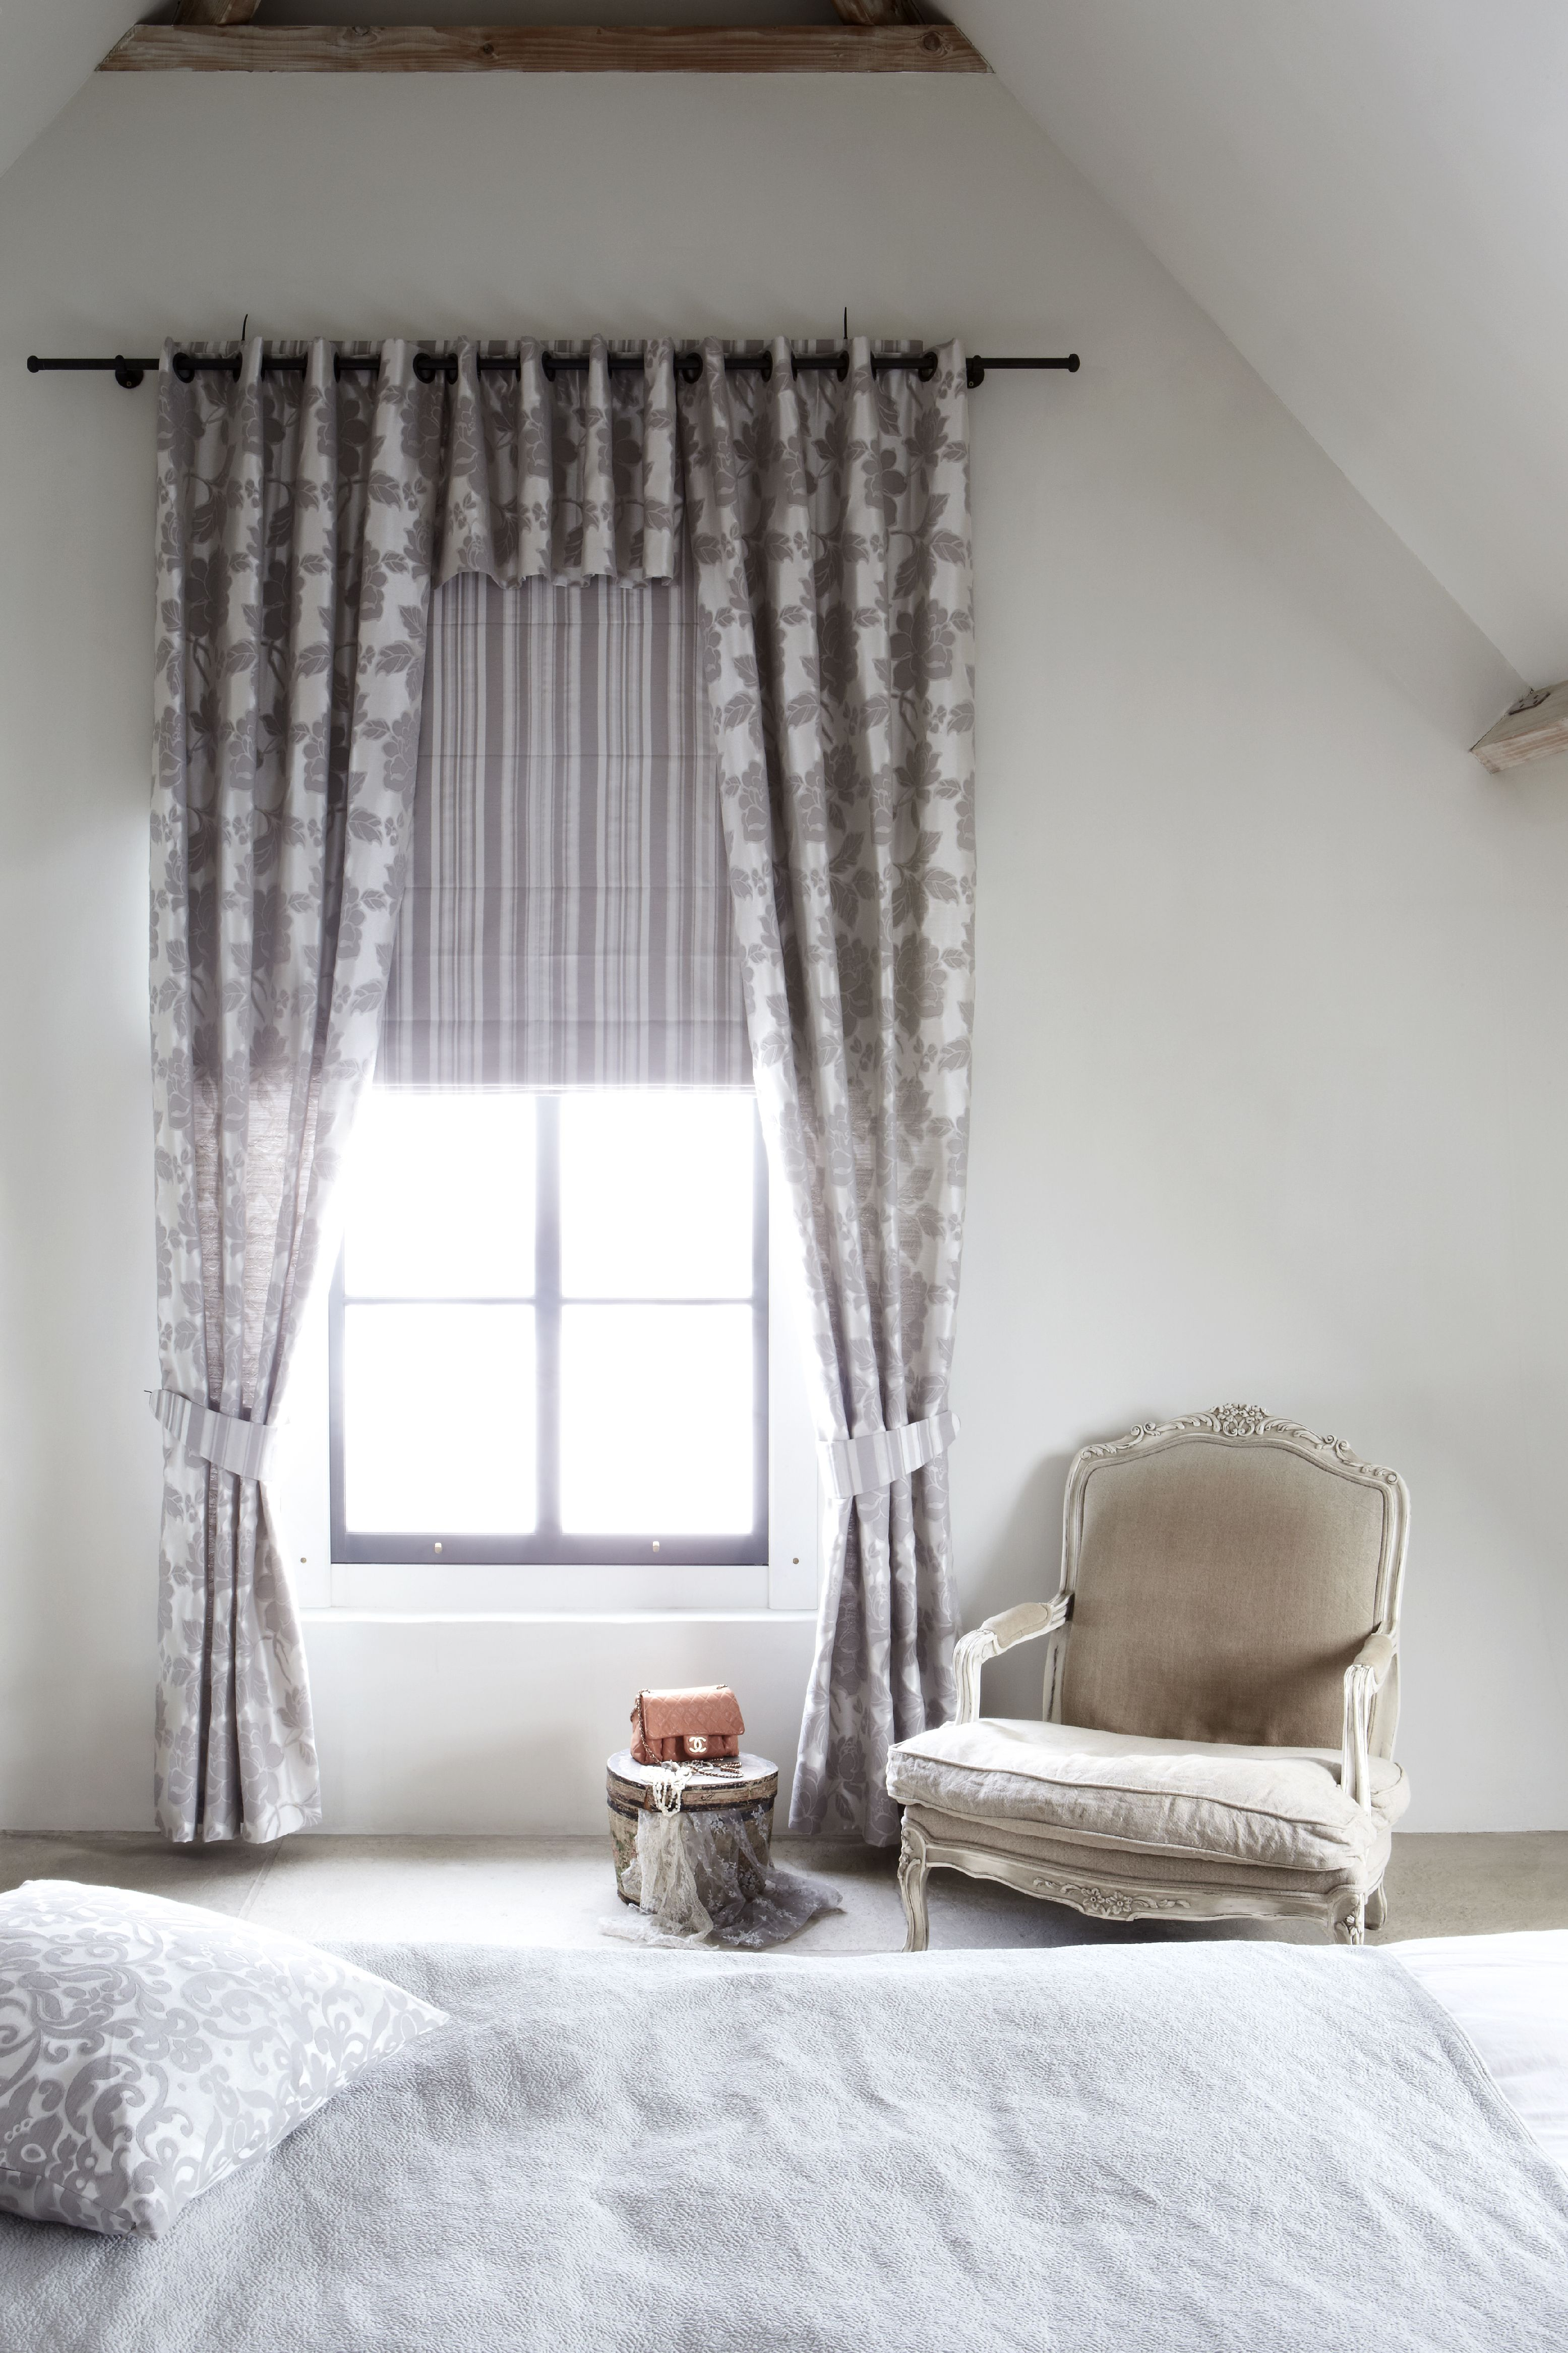 valance our mock shades easy shopping full process styles roman stop best shade one with treatment of beautiful greensboro installers seamstress size workroom make the for window nc